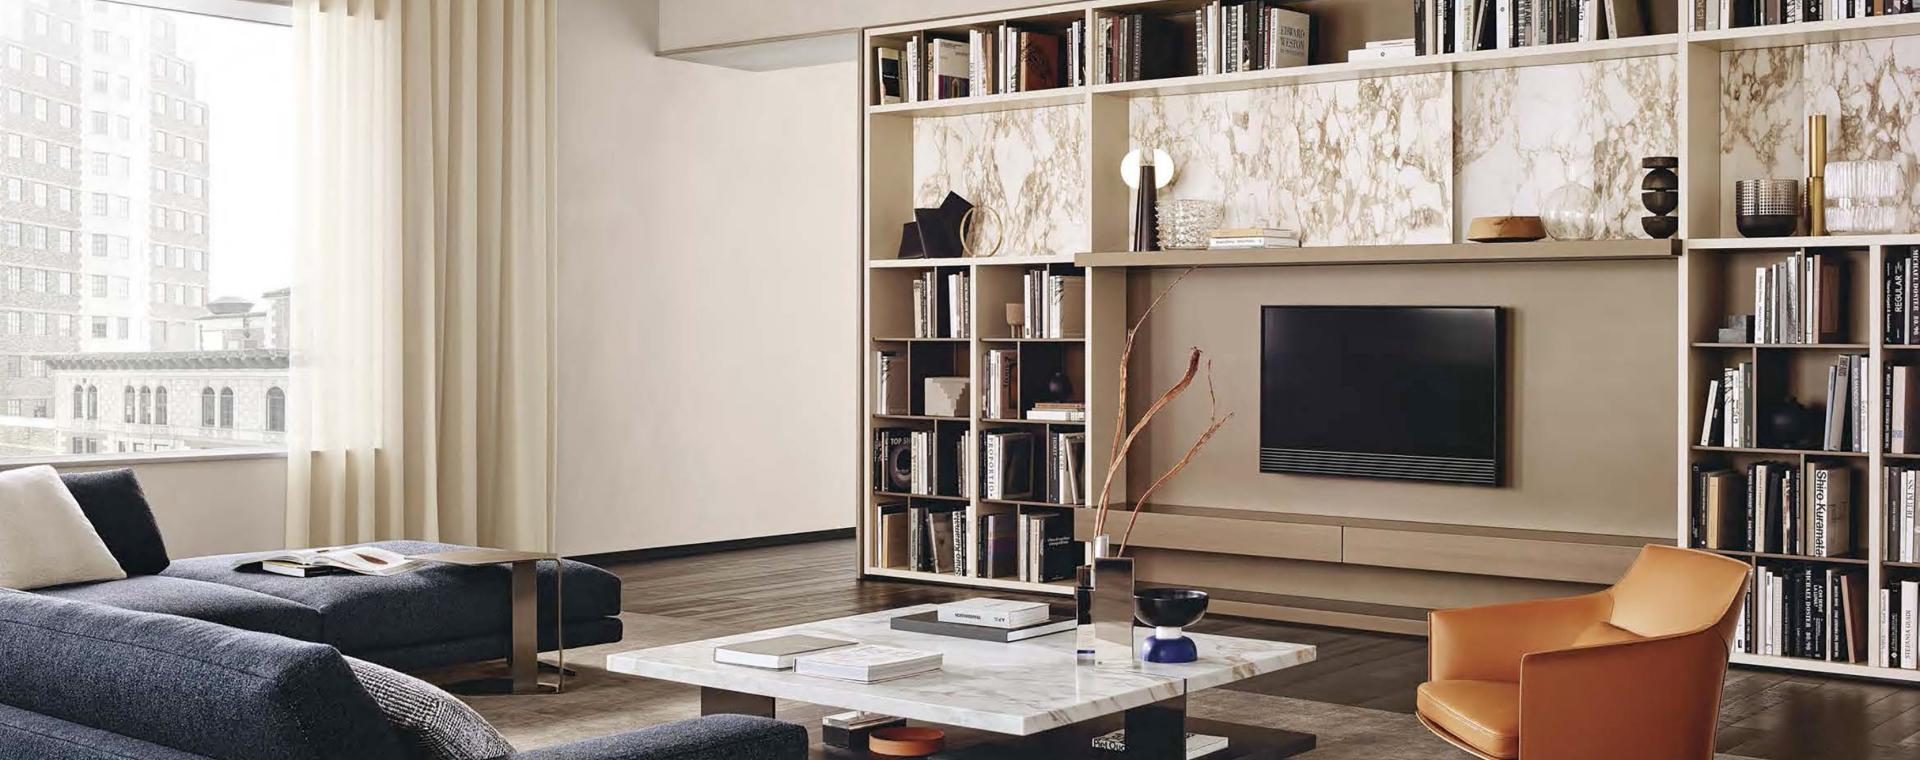 Best italian furniture brands in Cyprus